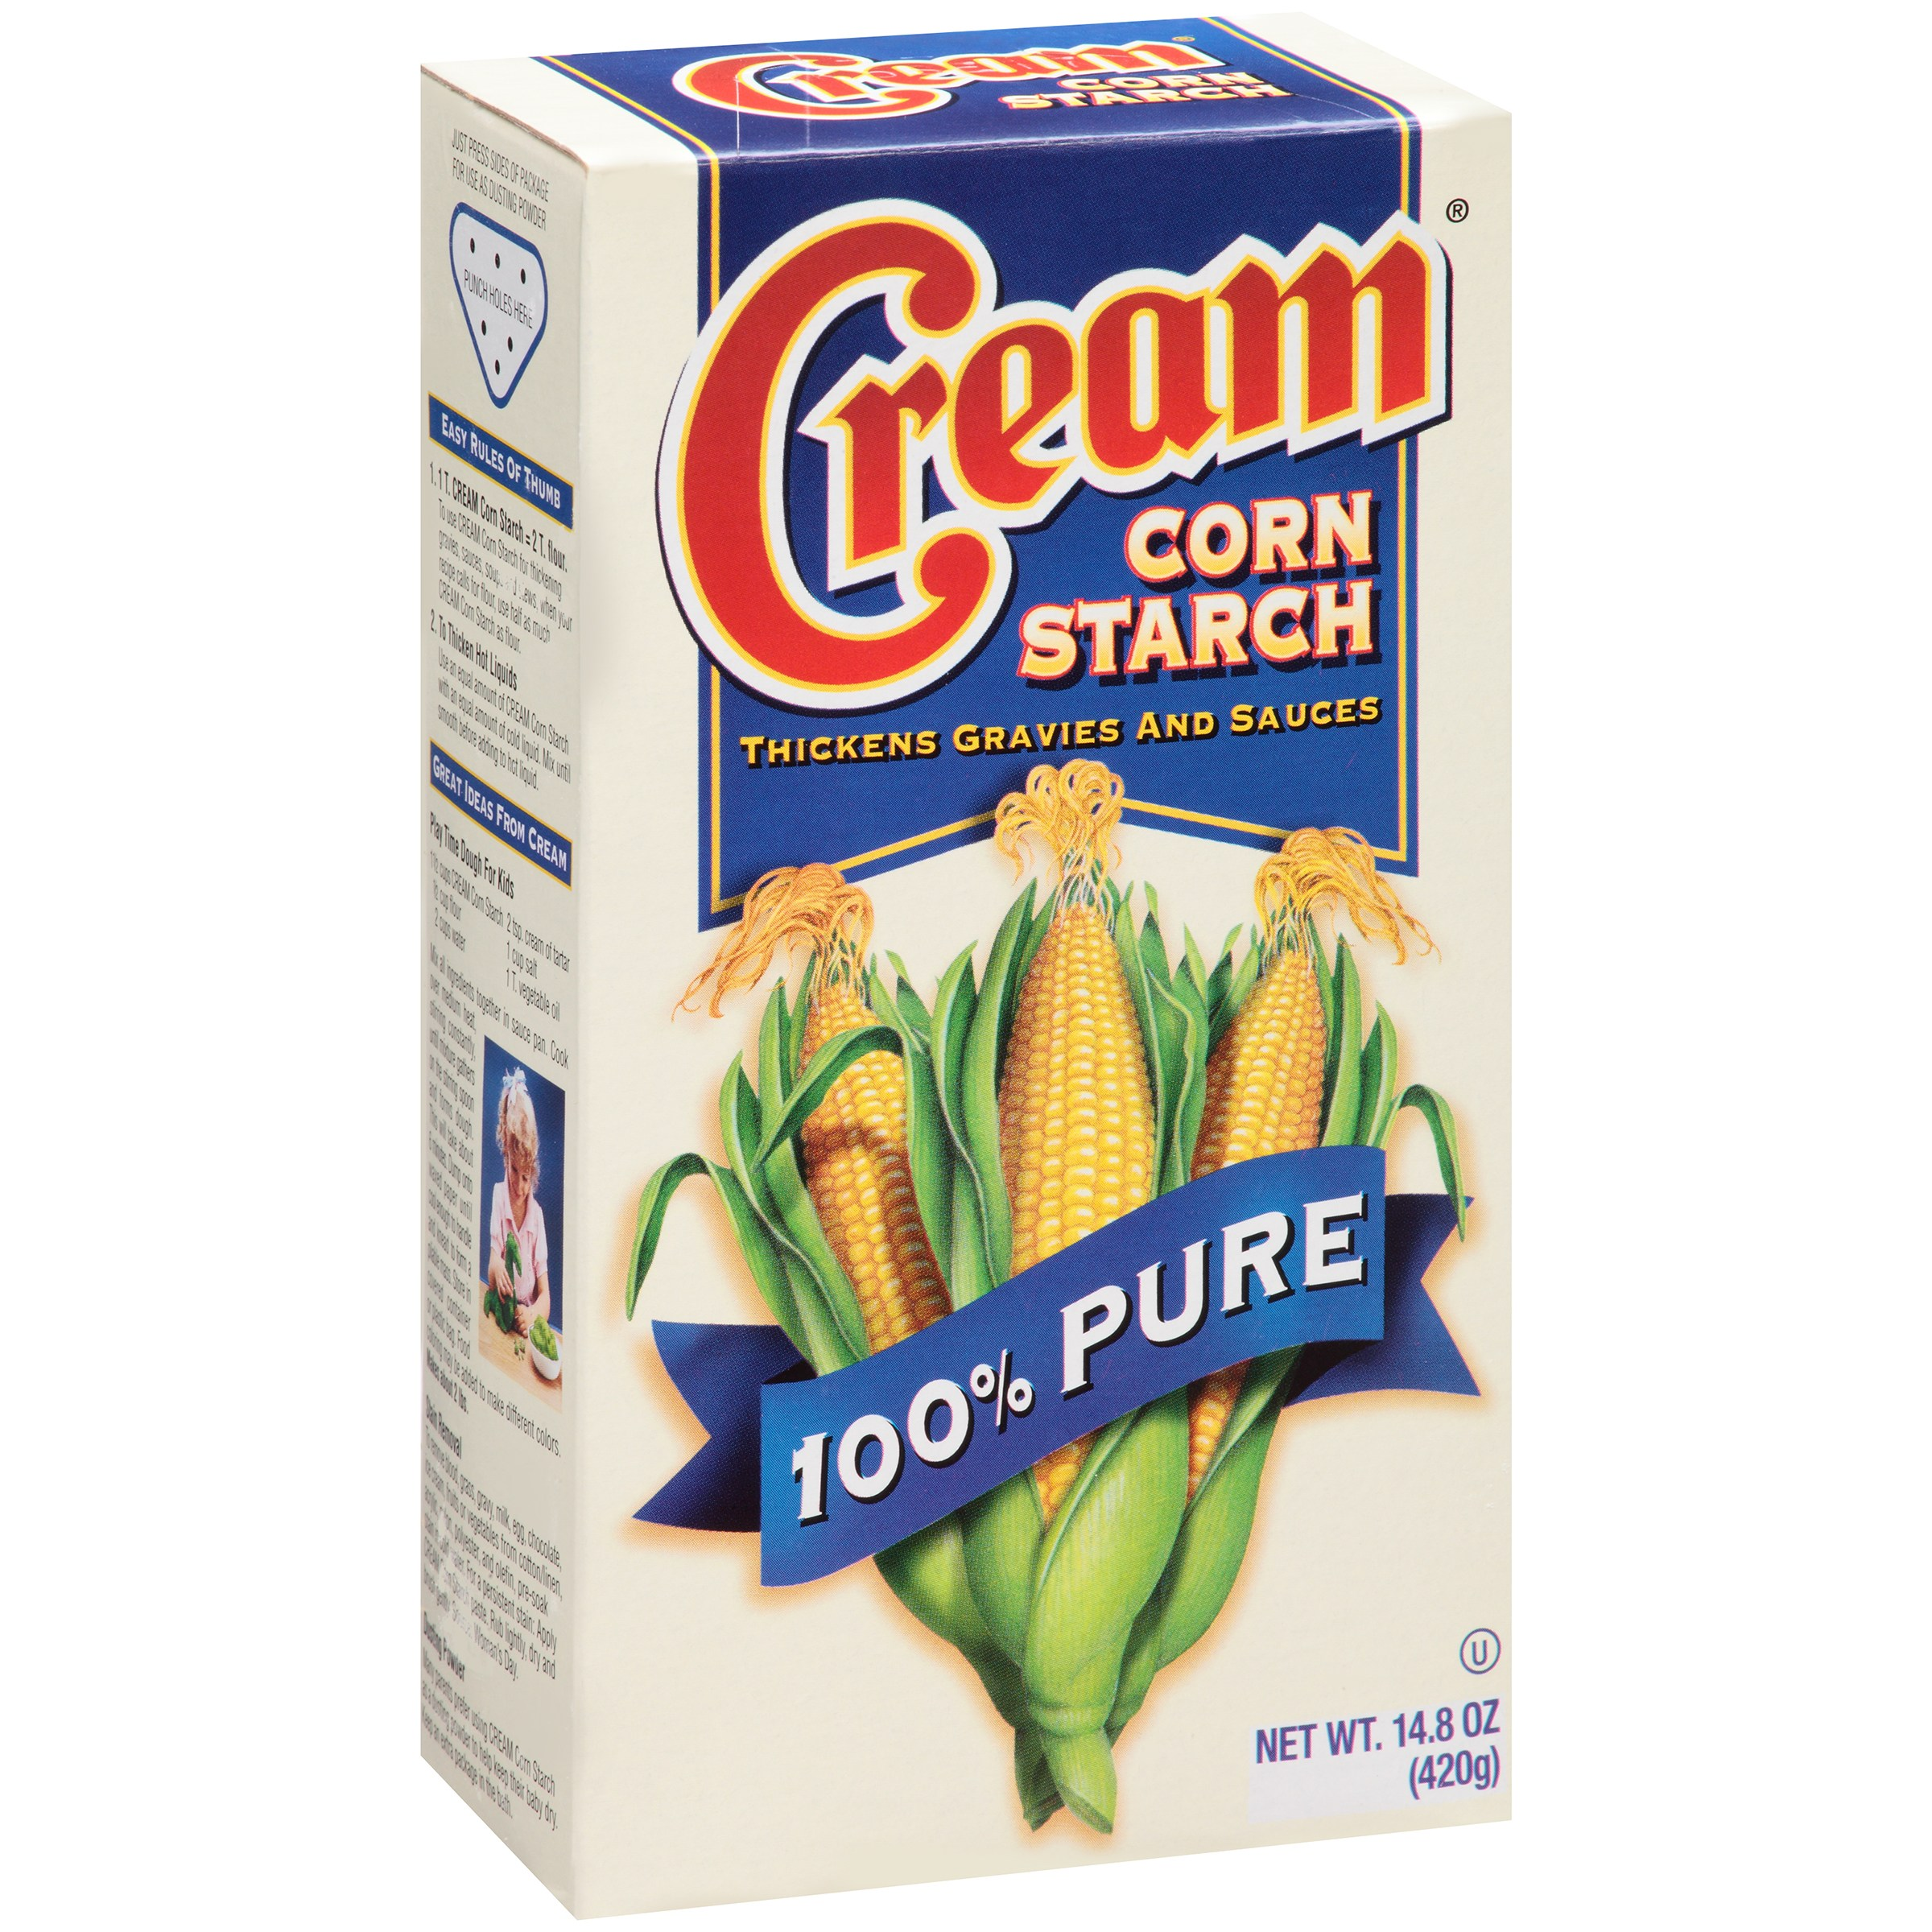 Cream® Corn Starch Thickens Gravies and Sauces 14.8 oz. Box